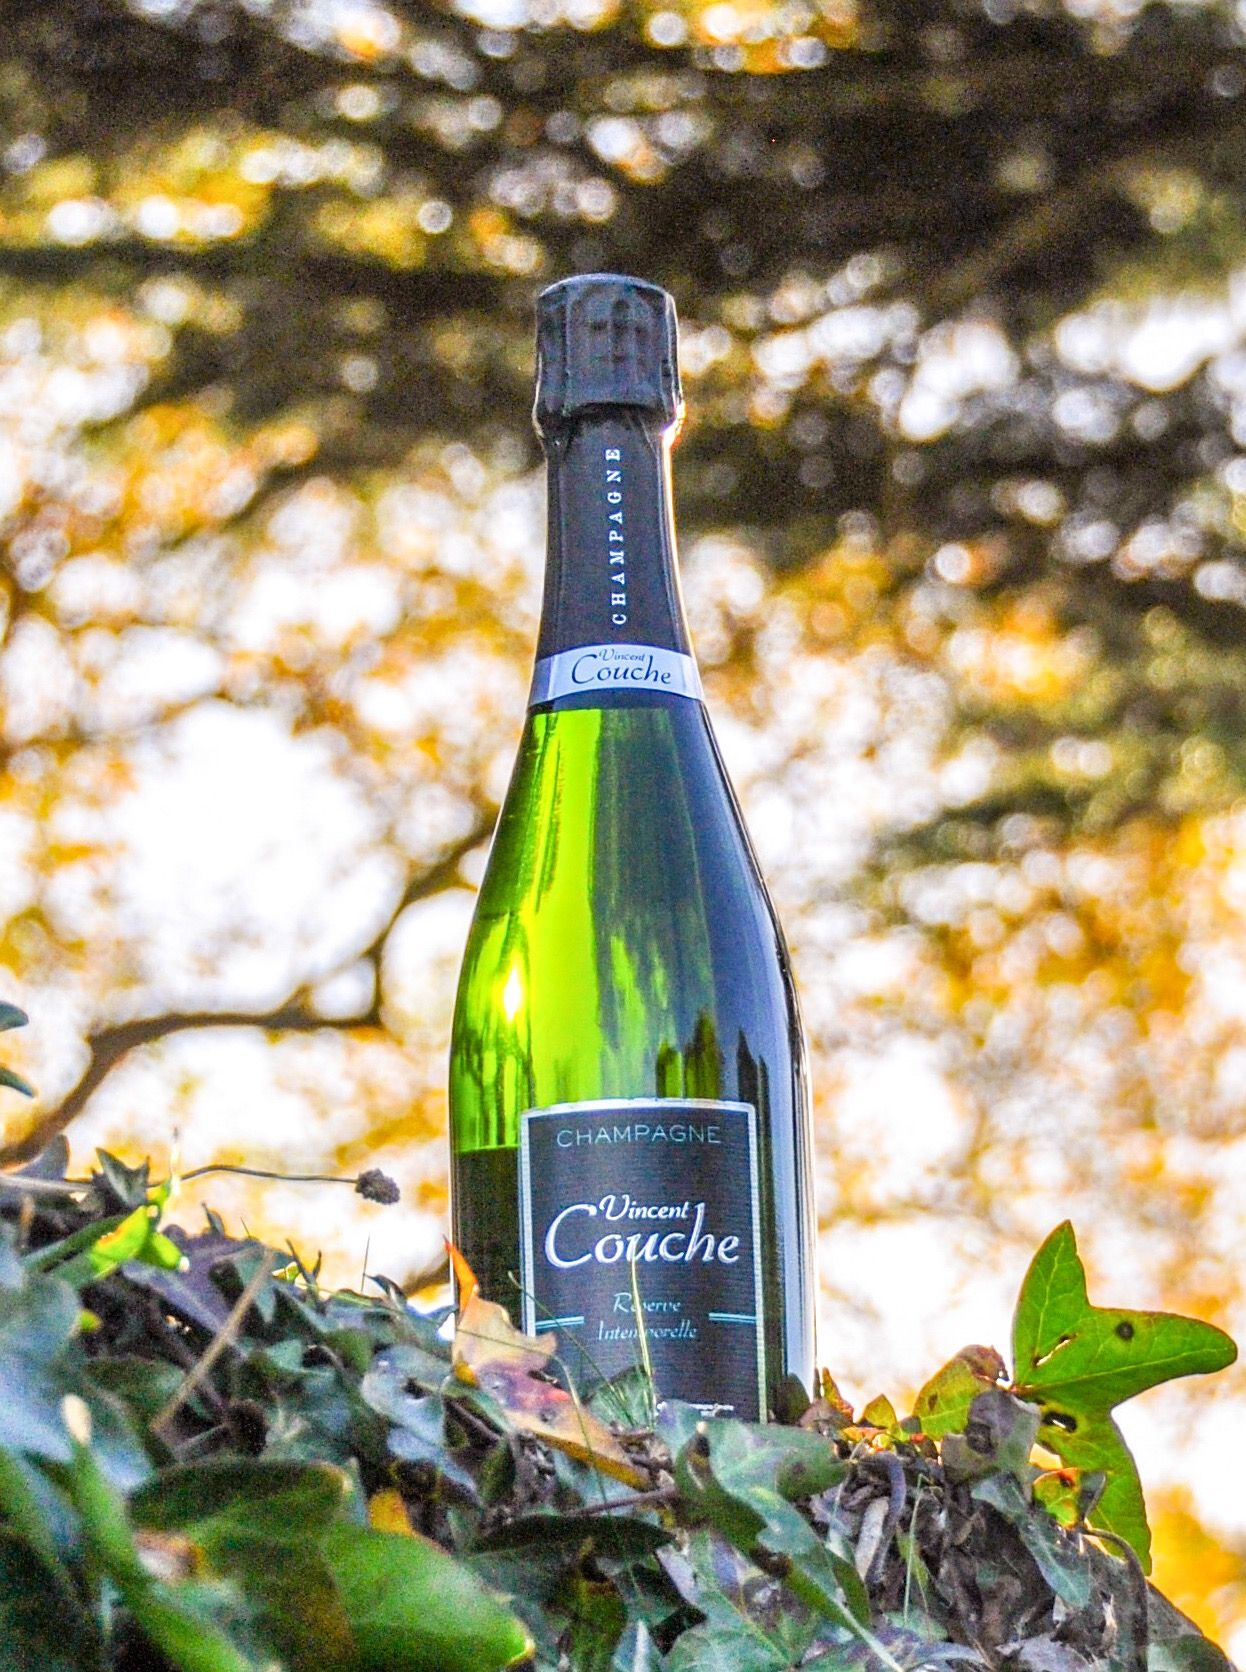 Pin By Nfizz Wines On Nfizz Wines Uk Champagne Vincent Couche Biodynamic And Vegan Sparkling Wine Champagne Wine Tours France Wine Bottle Carrier